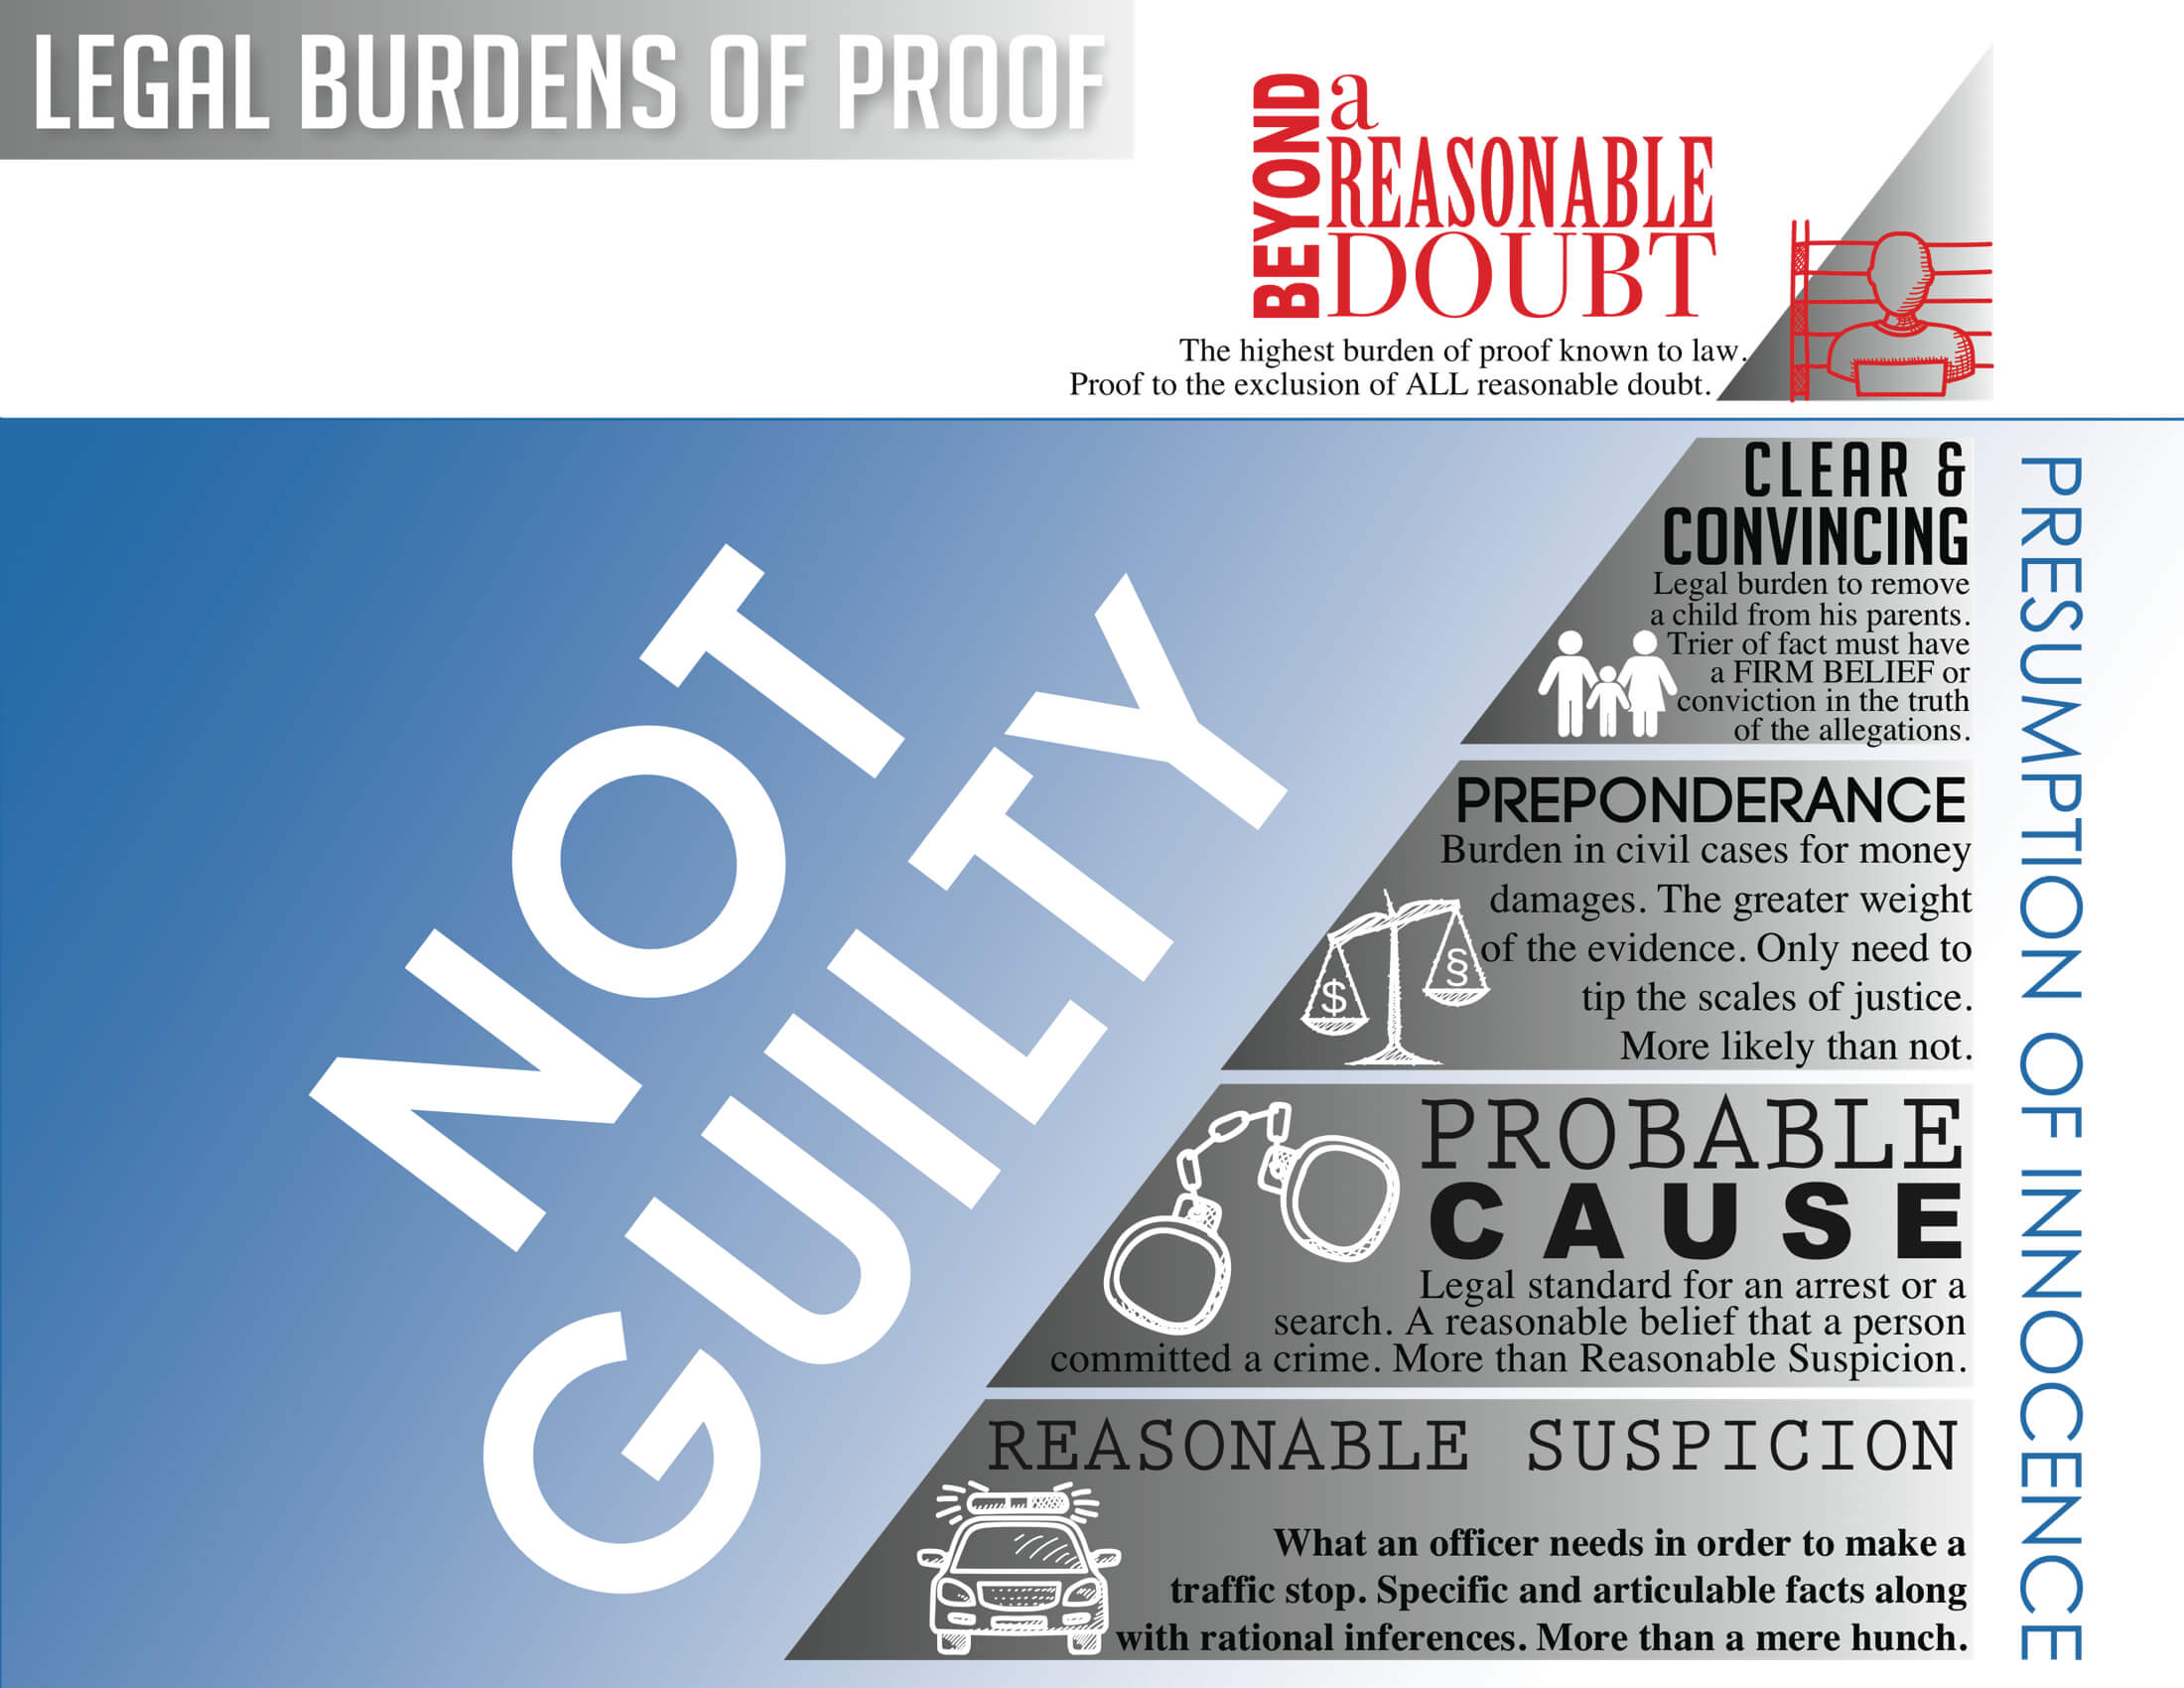 Powerpoint slide image for legal burden of proof beyond a reasonable doubt